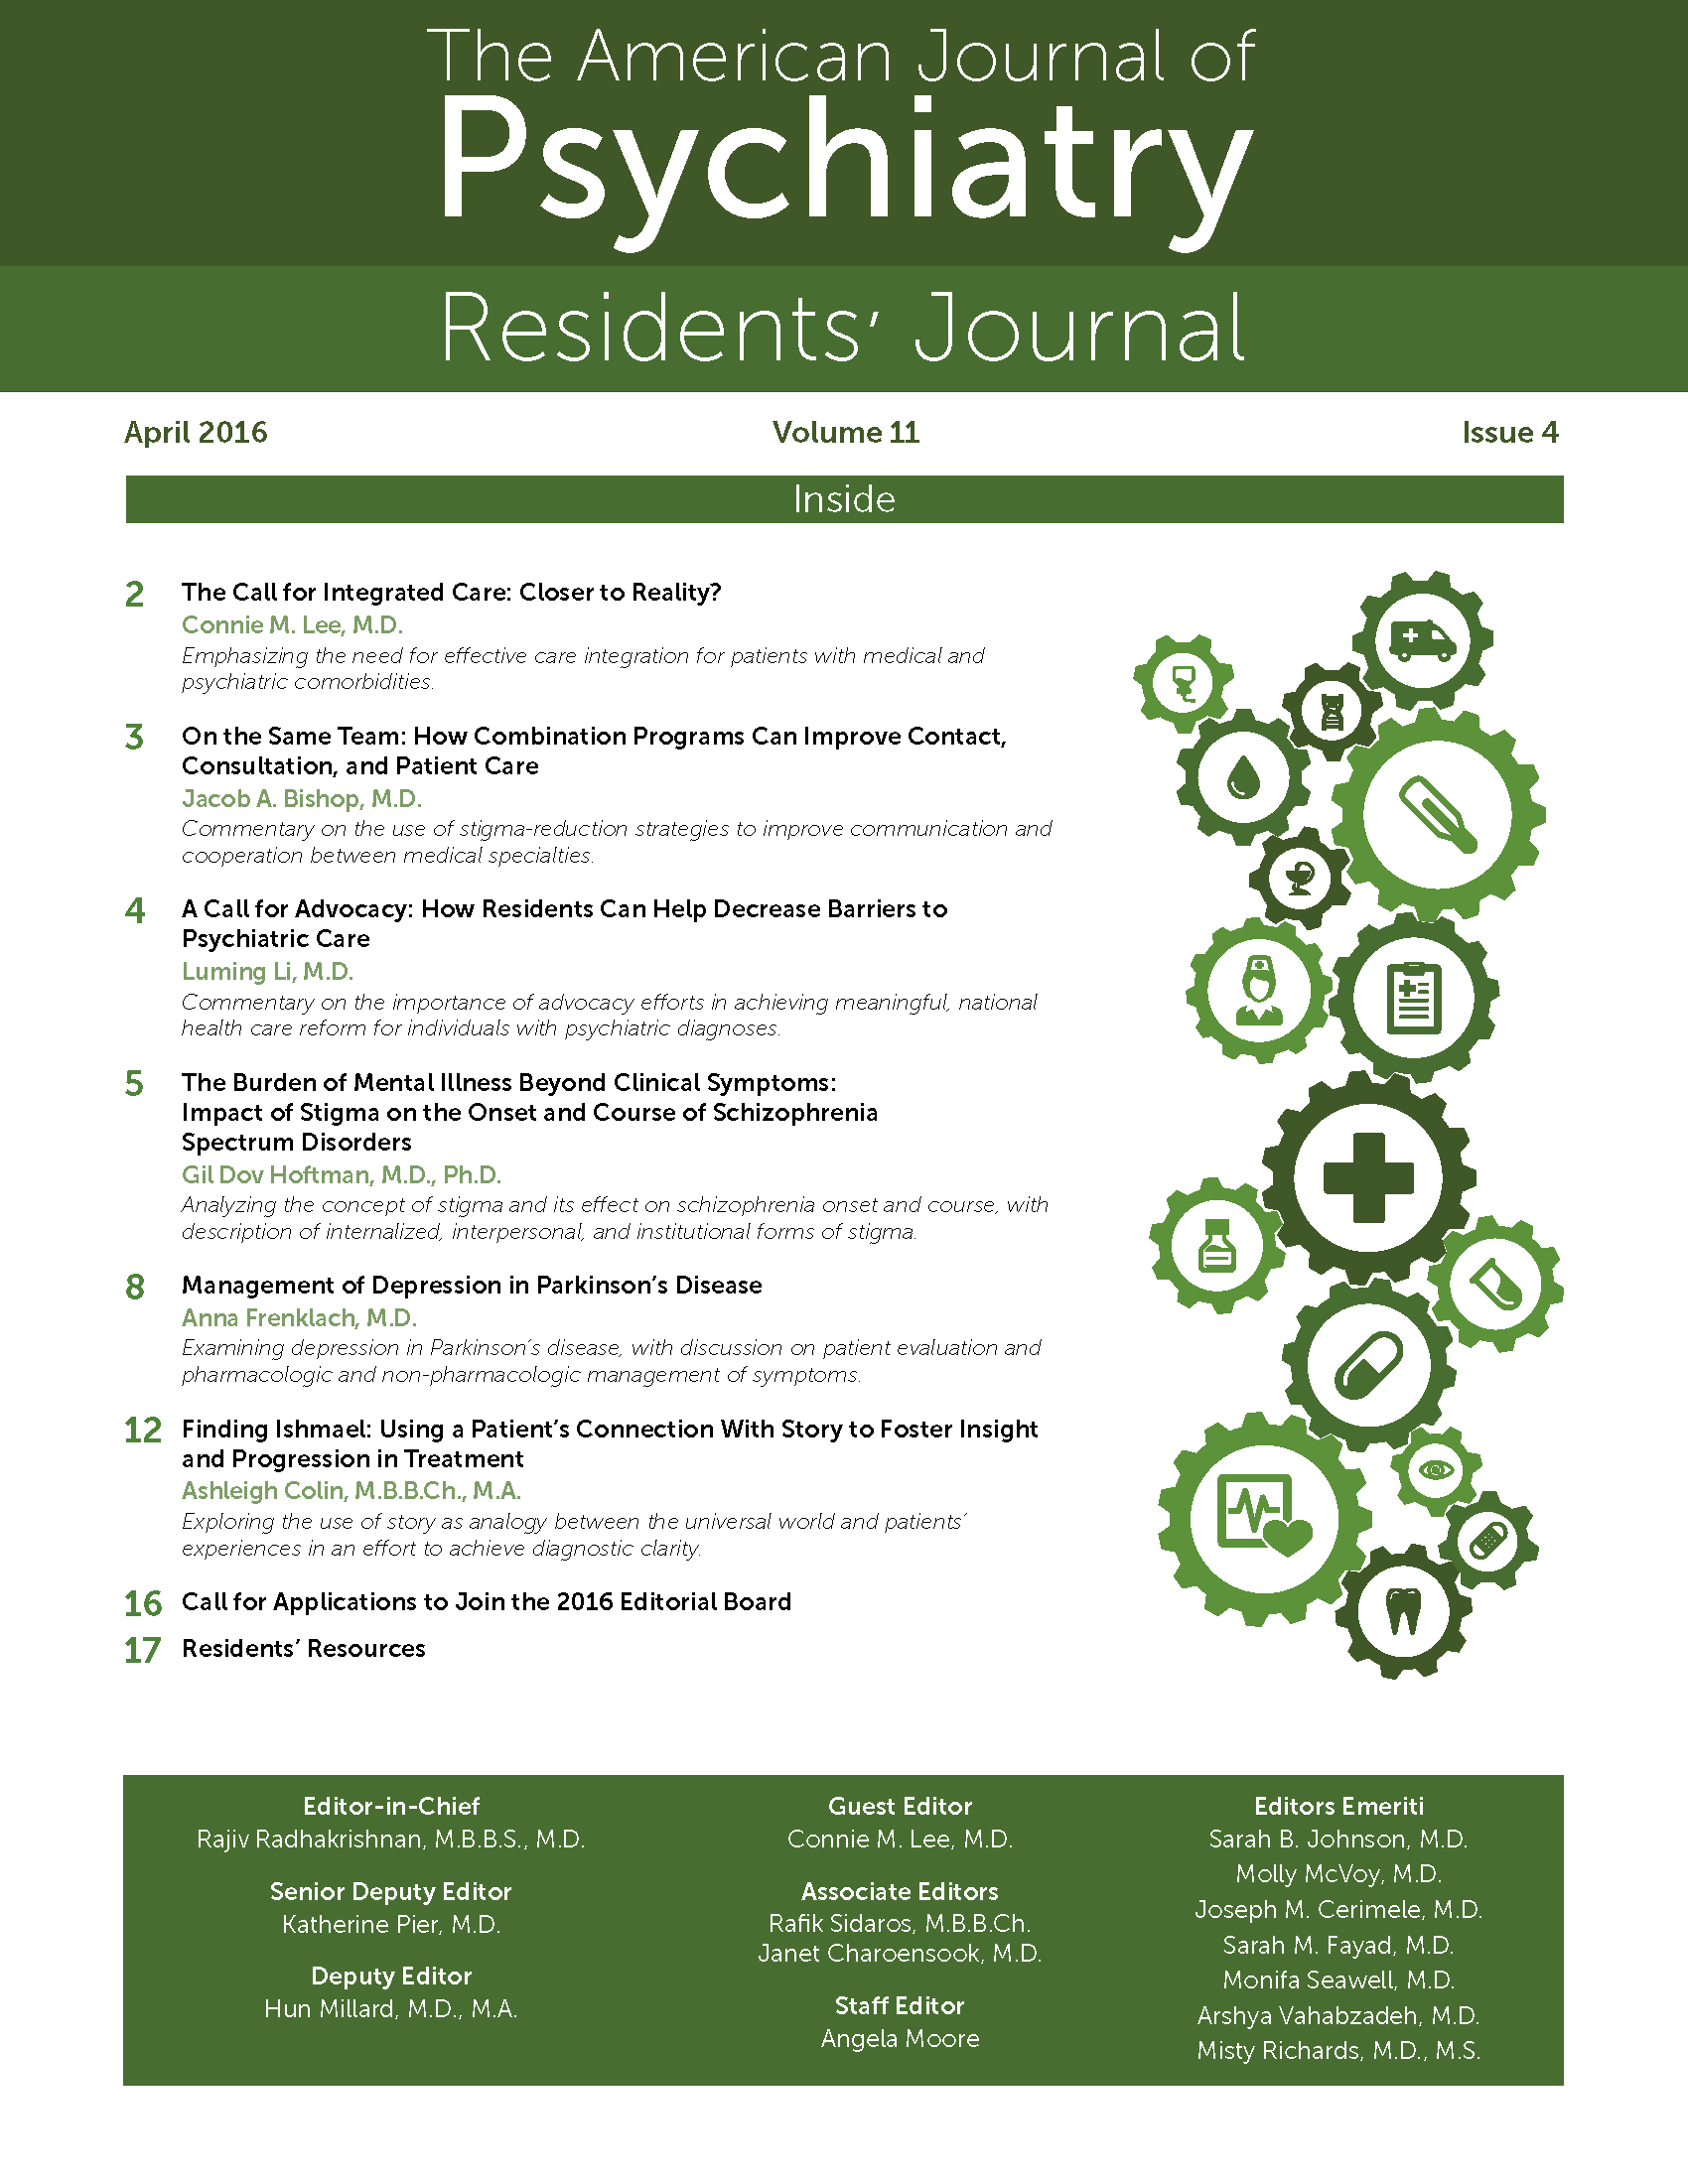 Review of systems for psychiatric patients - April 2016 Residents Journal